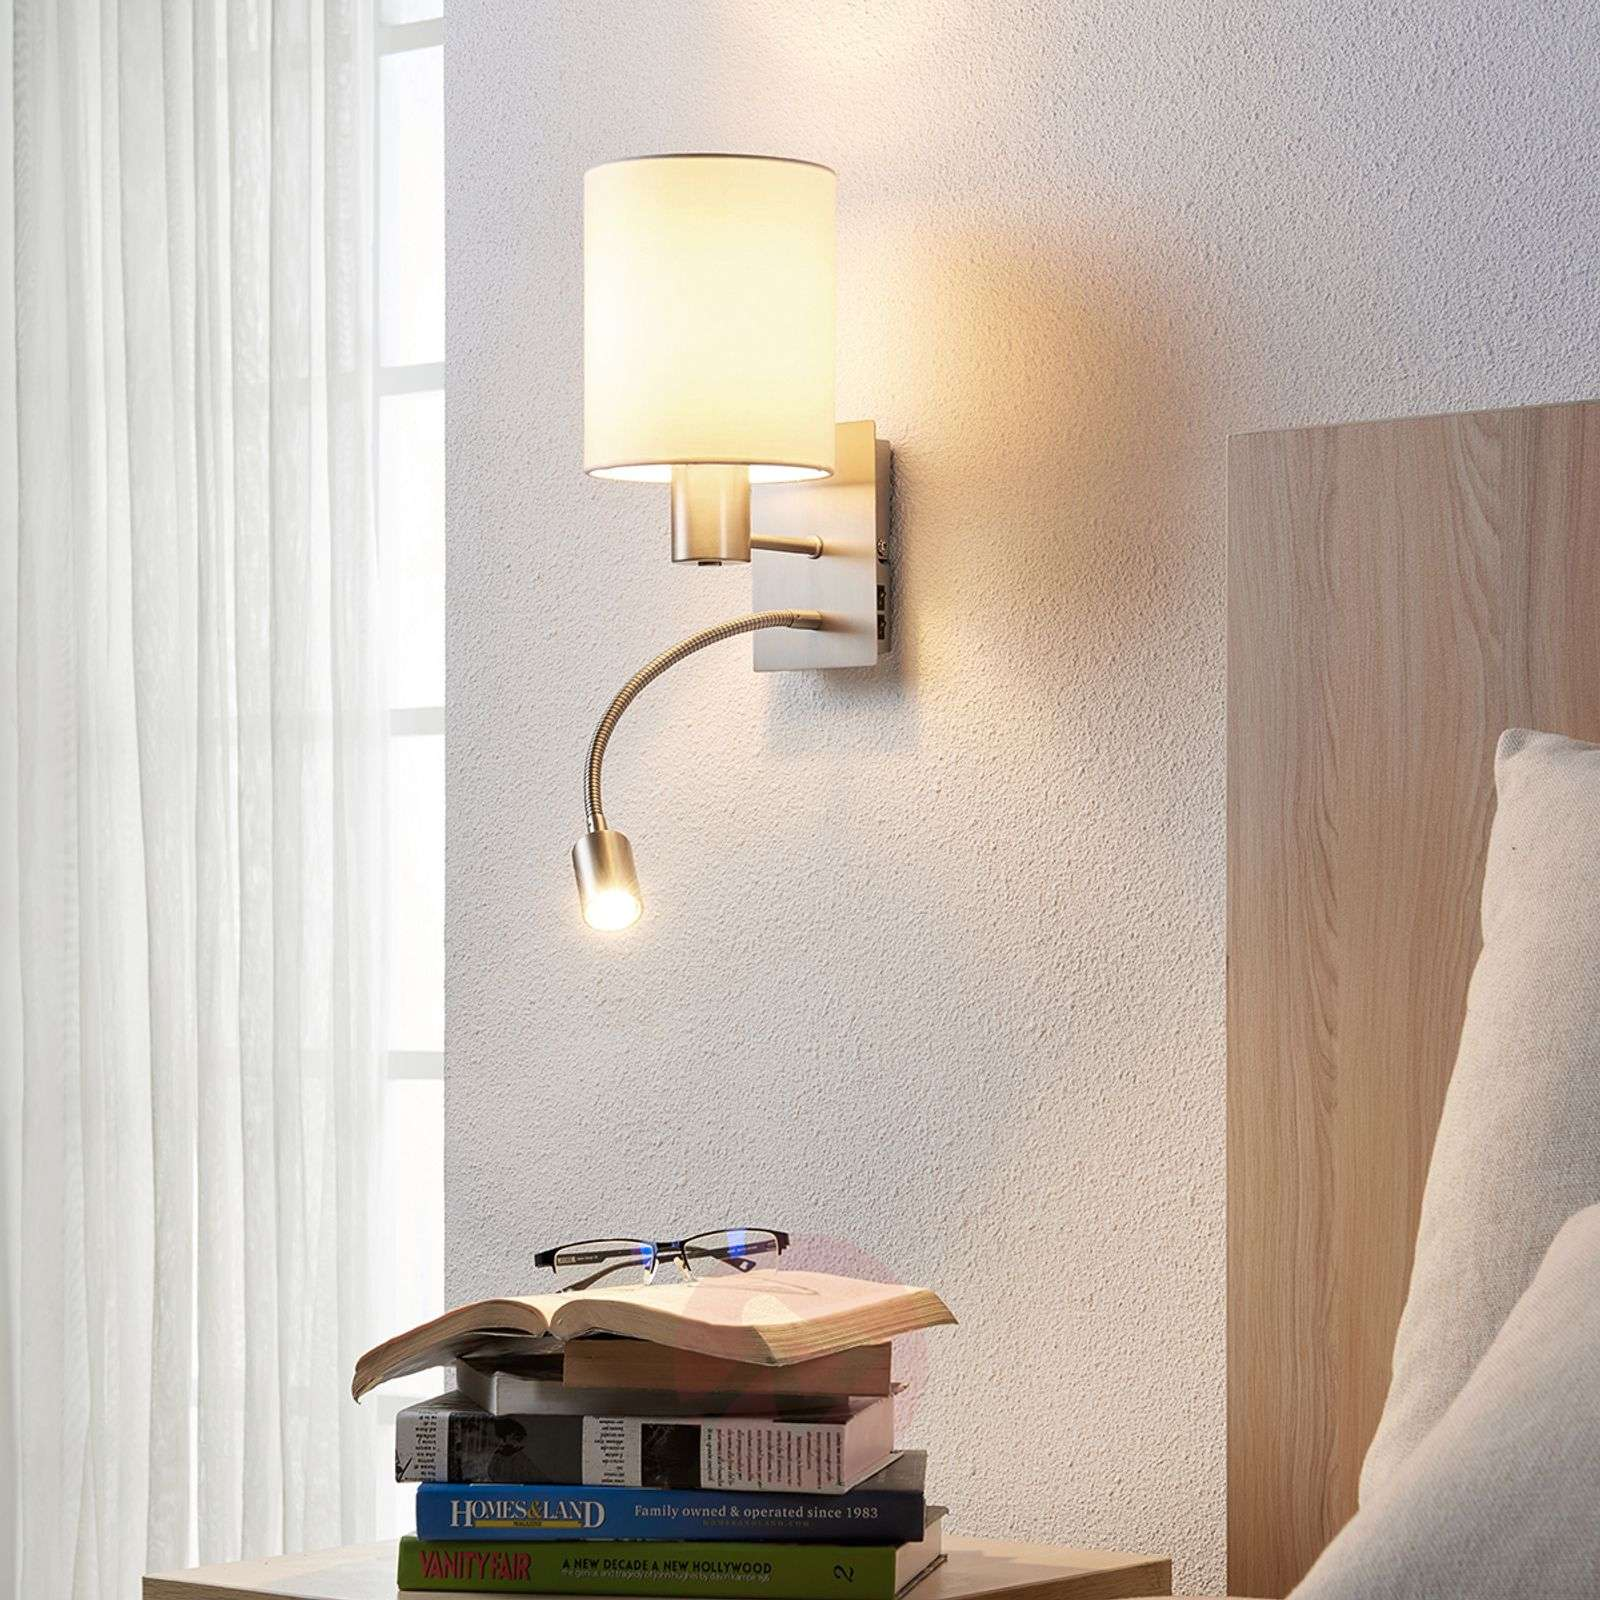 Fabric wall lamp Shajan with LED reading light-9620920-01